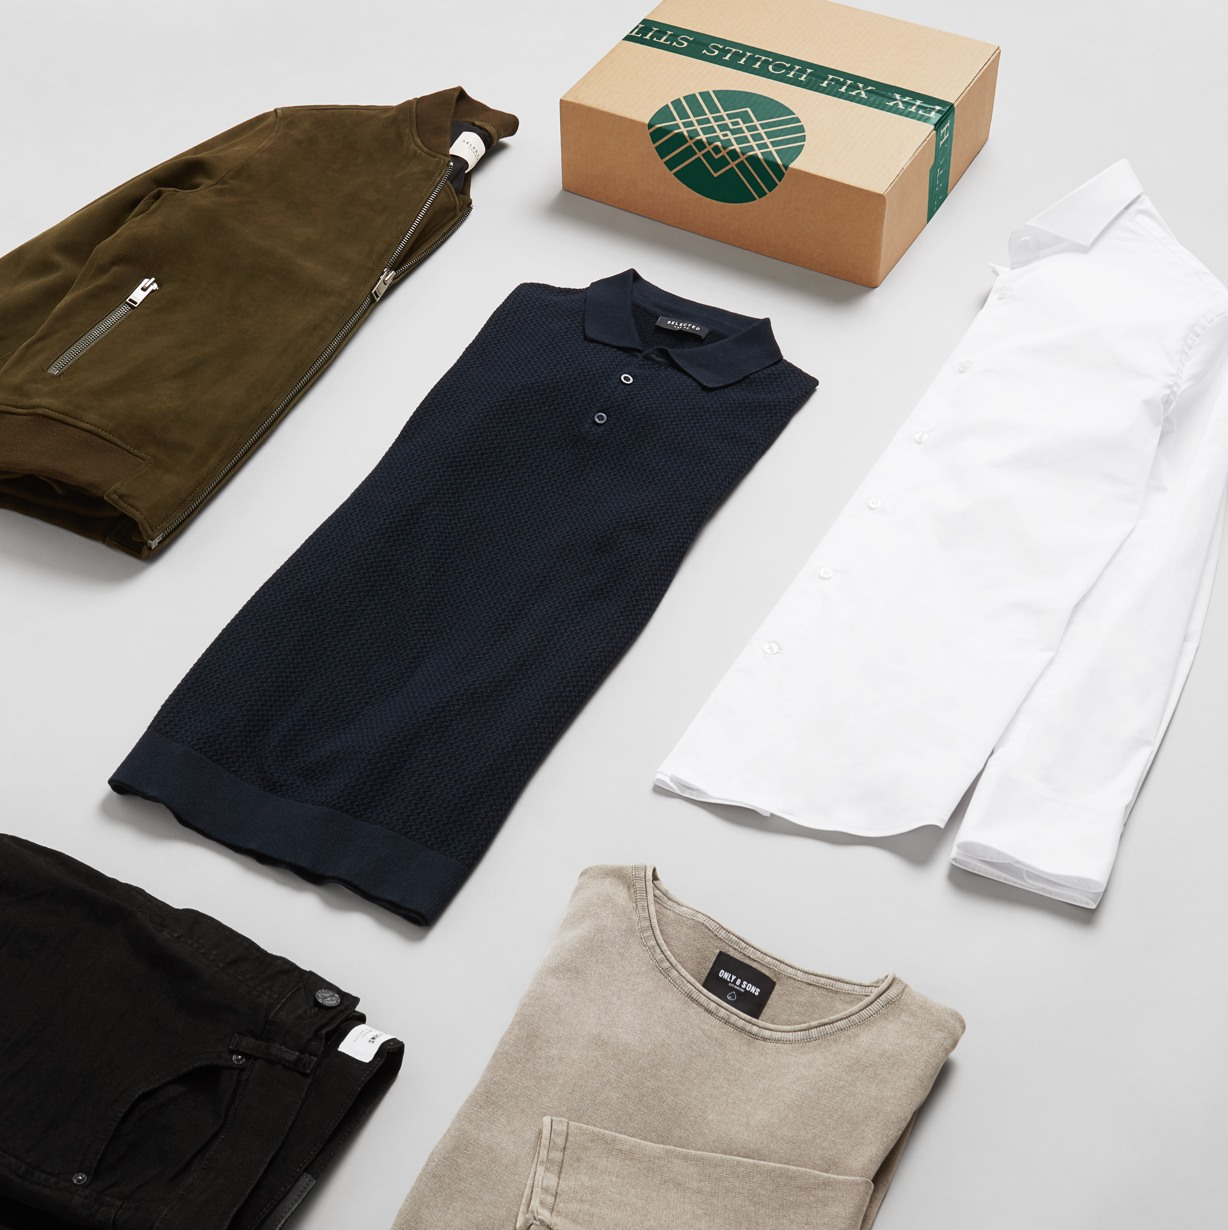 Men's clothing laid down beside a box